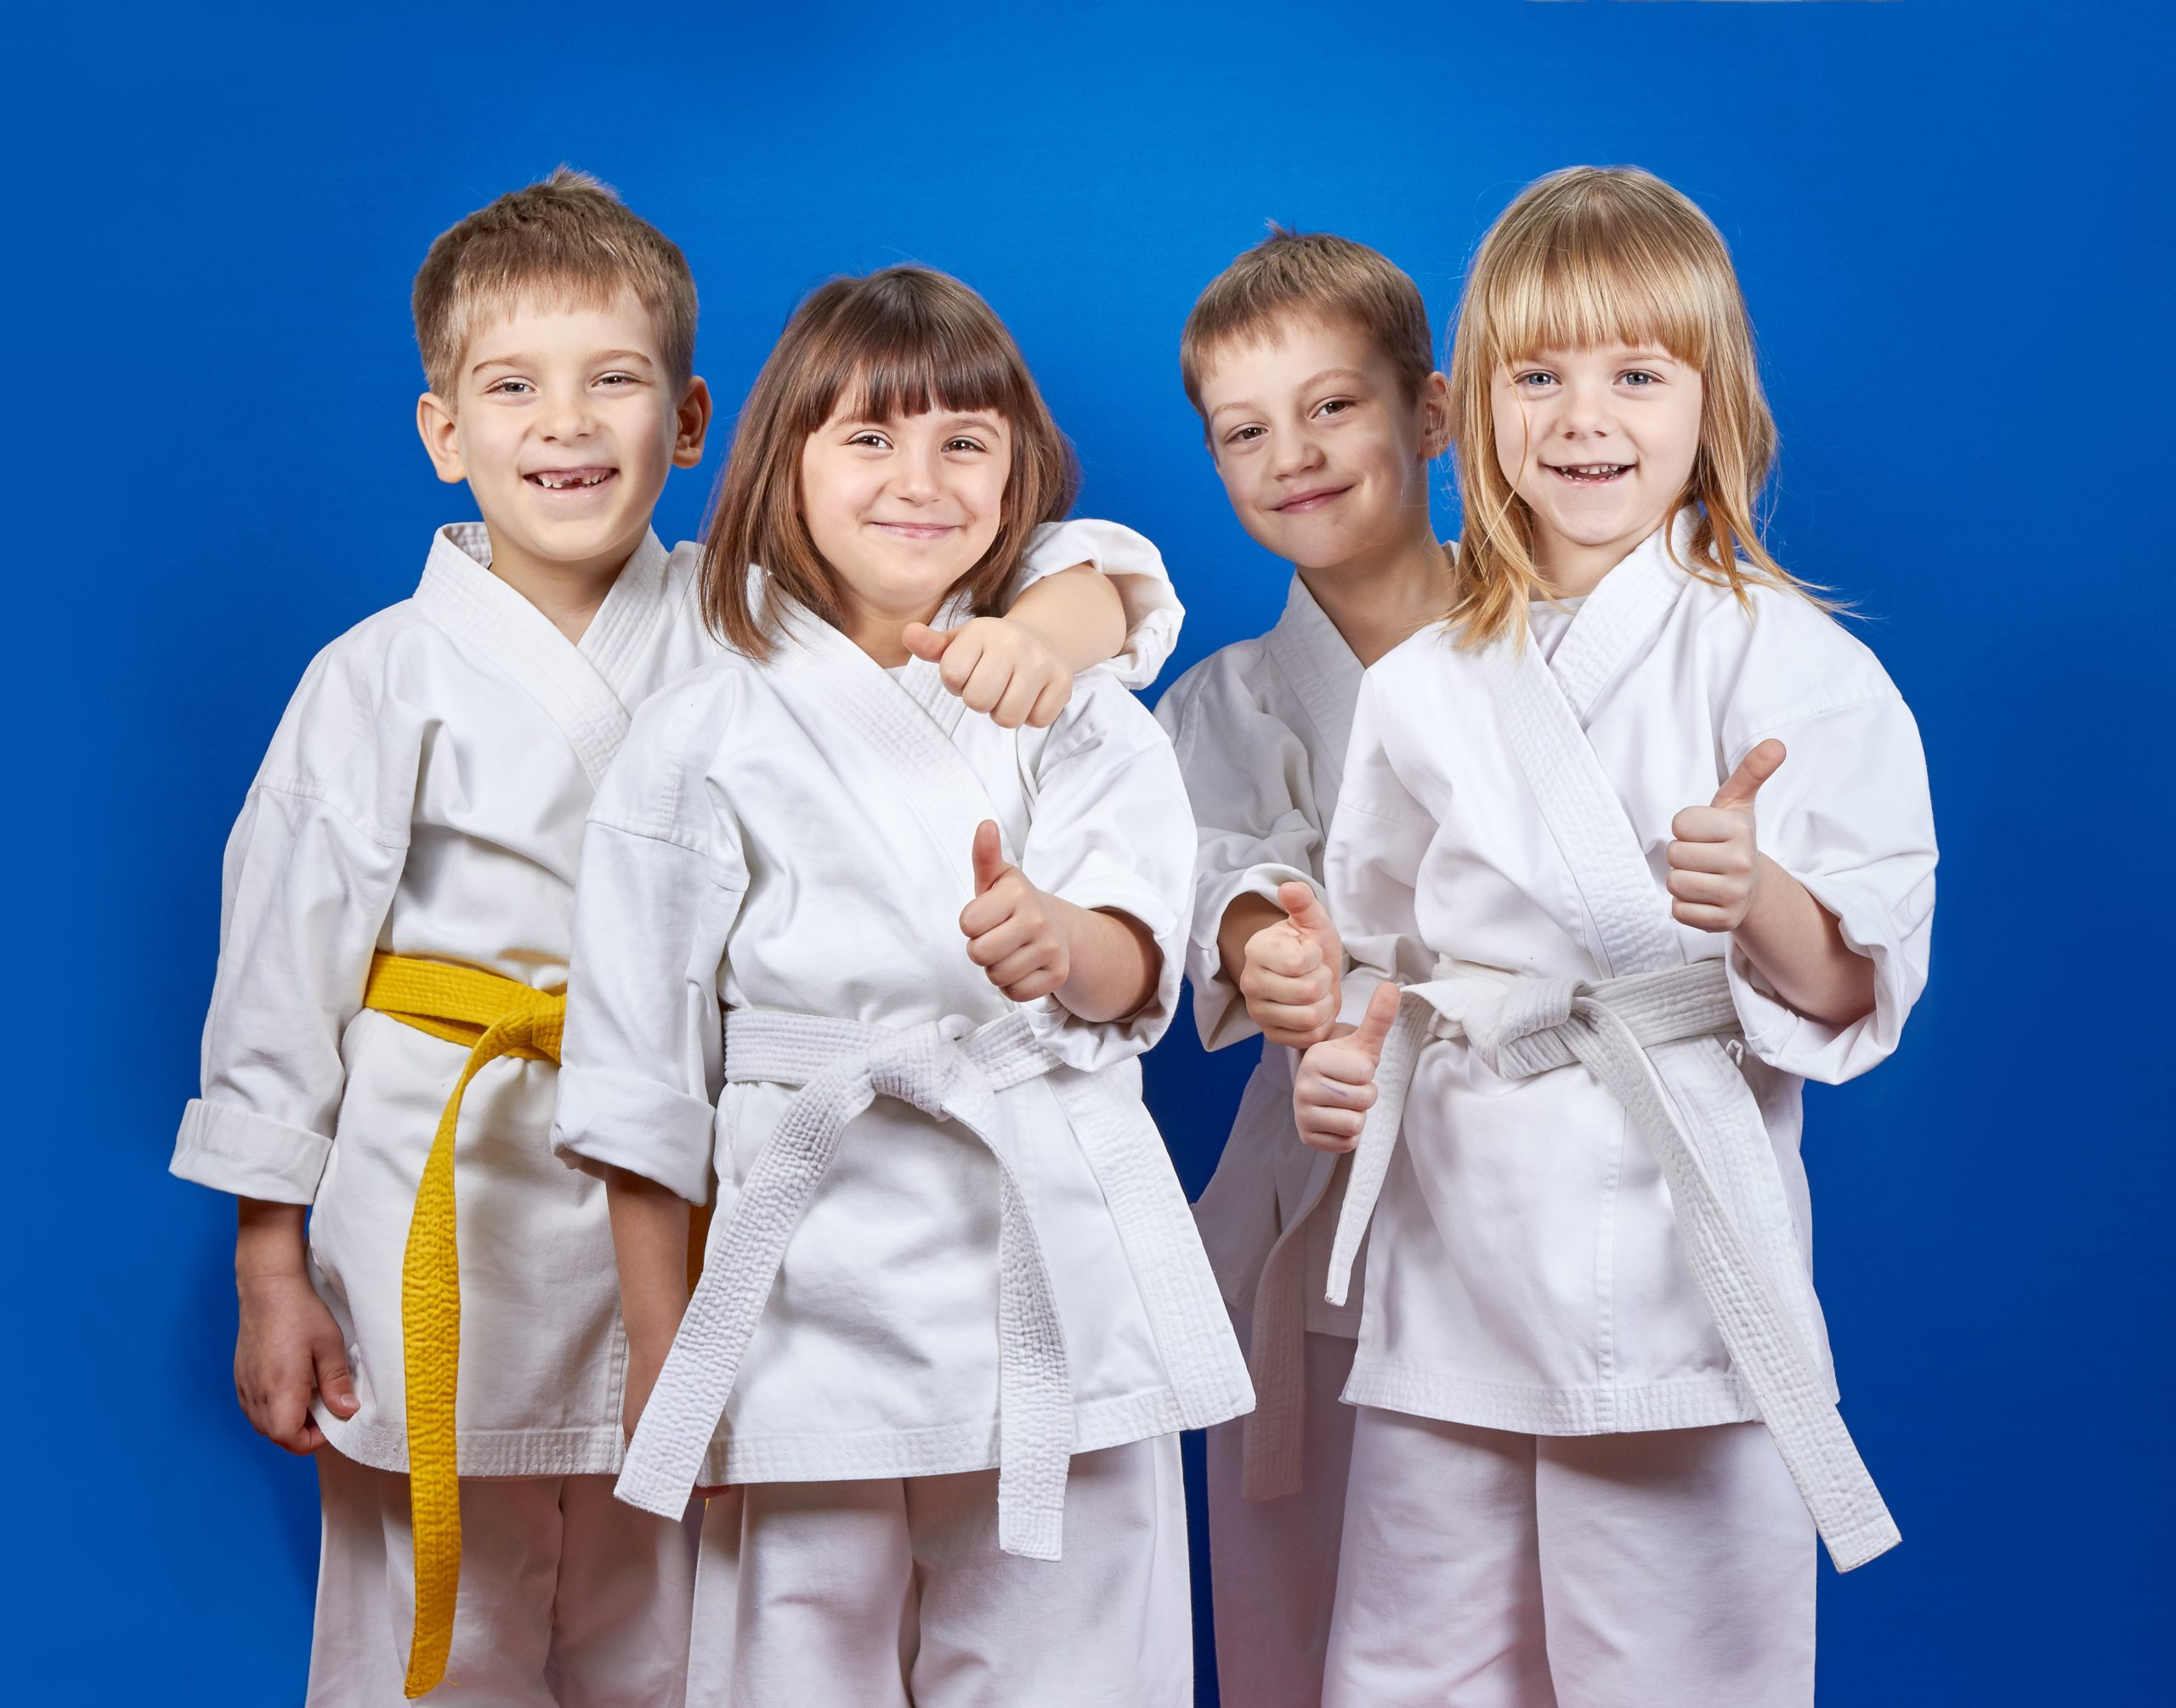 Four smiling boys and girls in karate outfits